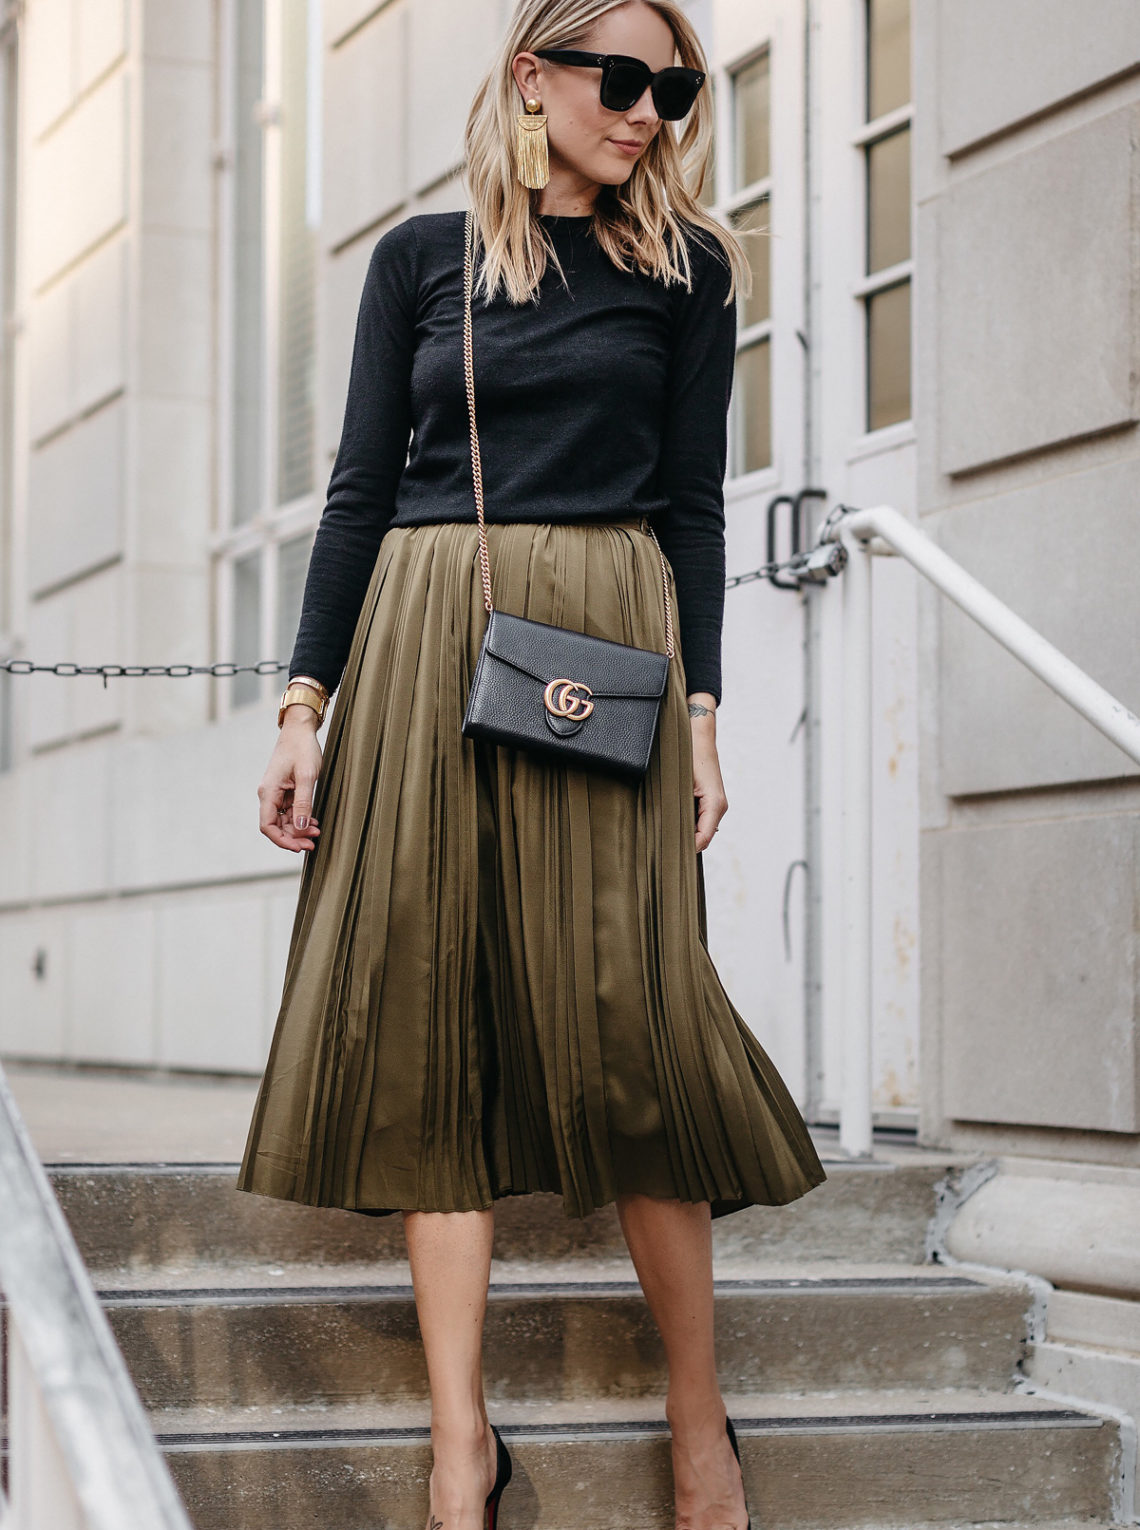 Blonde Woman Wearing Black Sweater Robert Rodriguez Green Pleated Skirt Gucci Marmont Handbag Christian Louboutin Black Pumps Fashion Jackson Dallas Blogger Fashion Blogger Street Style